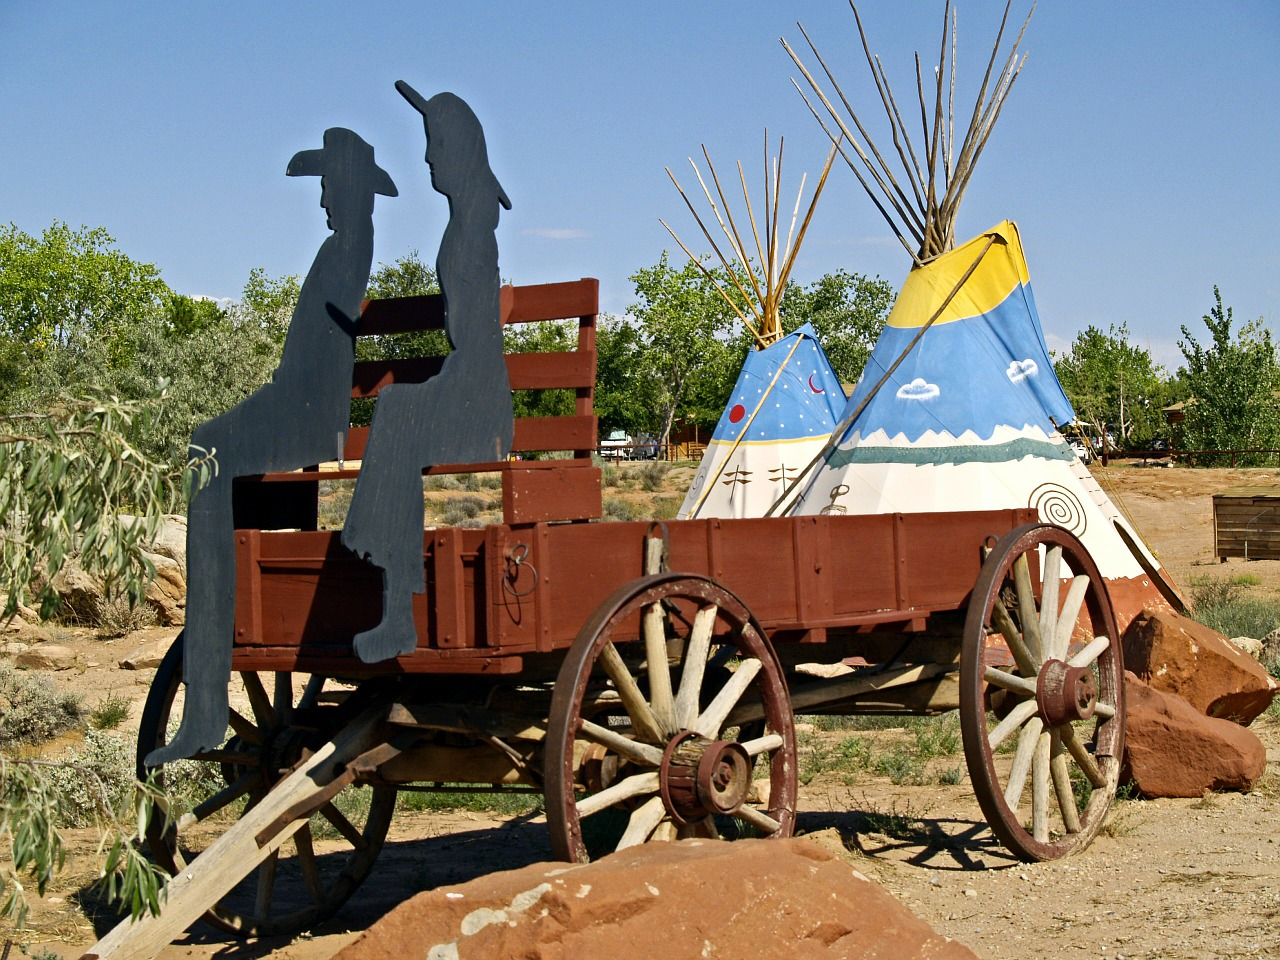 wild west wagon free photo